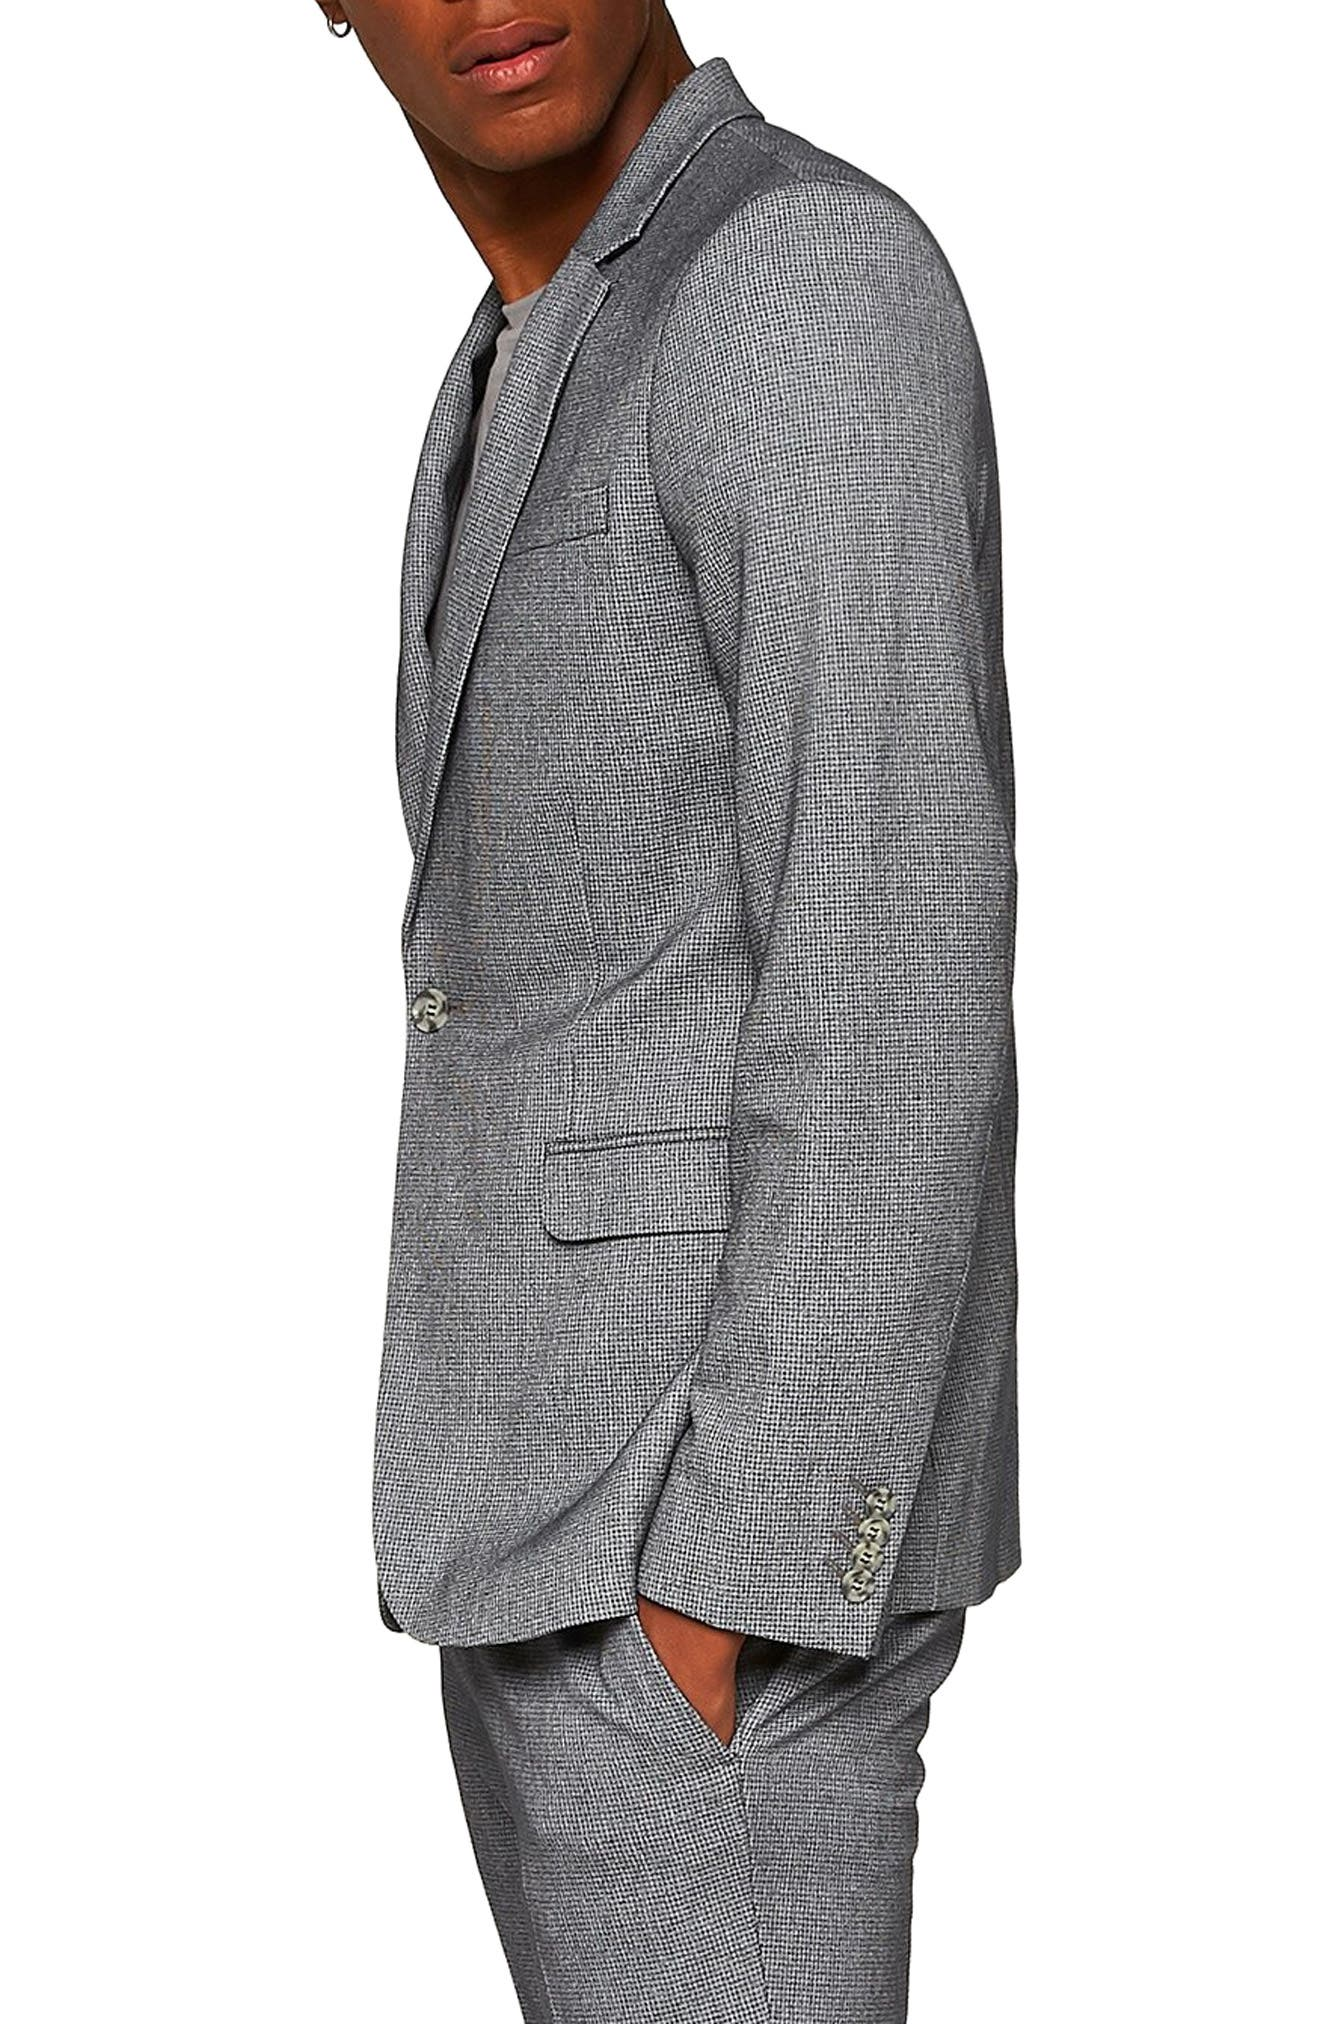 Ultra Skinny Fit Houndstooth Suit Jacket,                             Alternate thumbnail 3, color,                             GREY